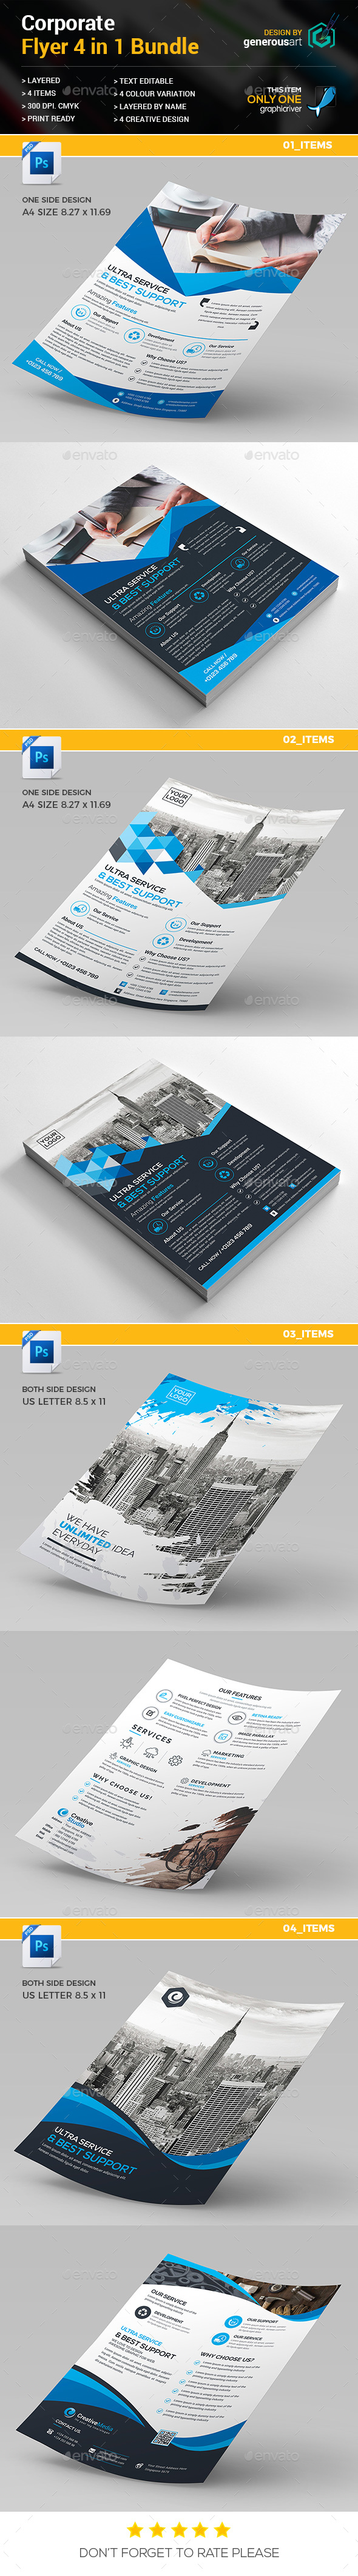 Flyer Bundle 4 in 1 - Corporate Flyers